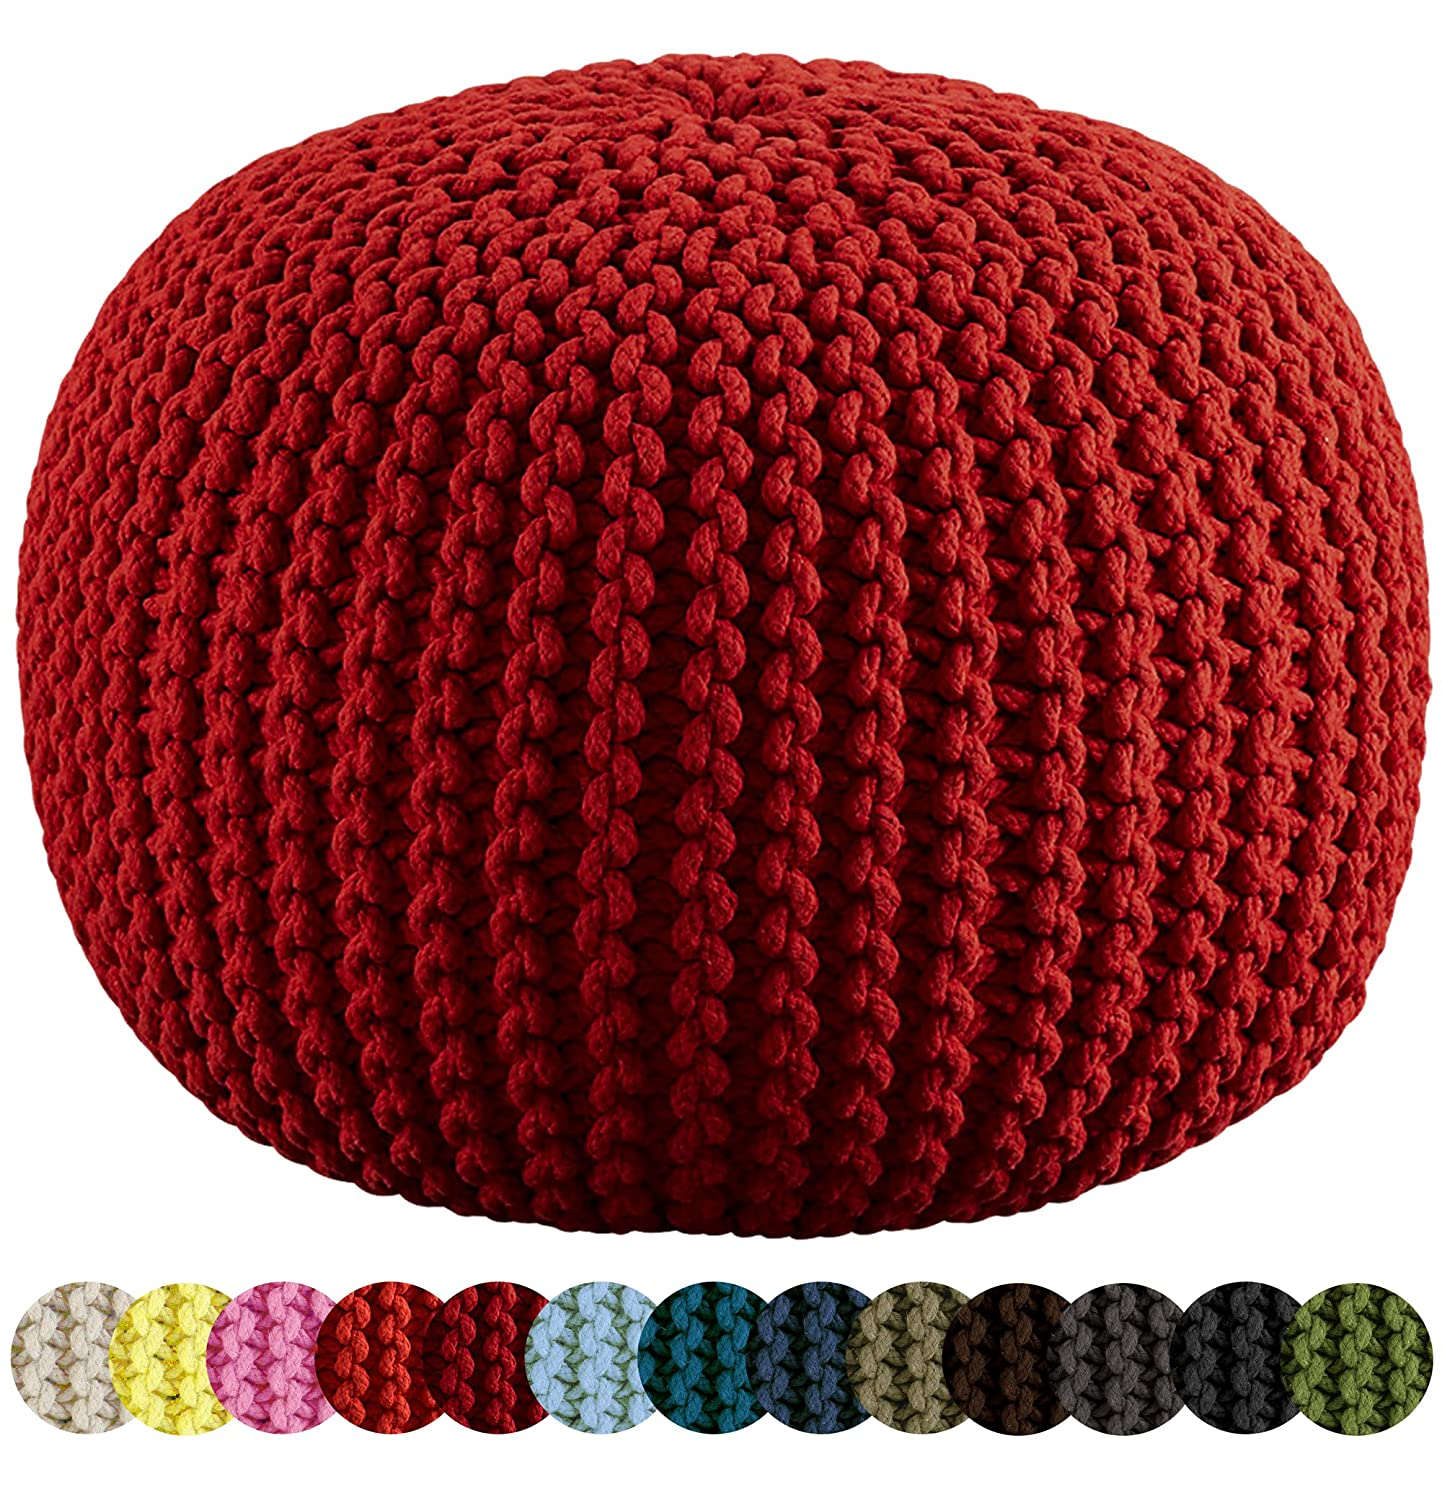 amazoncom cotton craft  hand knitted cable style dori pouf  - amazoncom cotton craft  hand knitted cable style dori pouf  ivory floor ottoman   cotton braid cord  handmade  hand stitched  trulyone of a